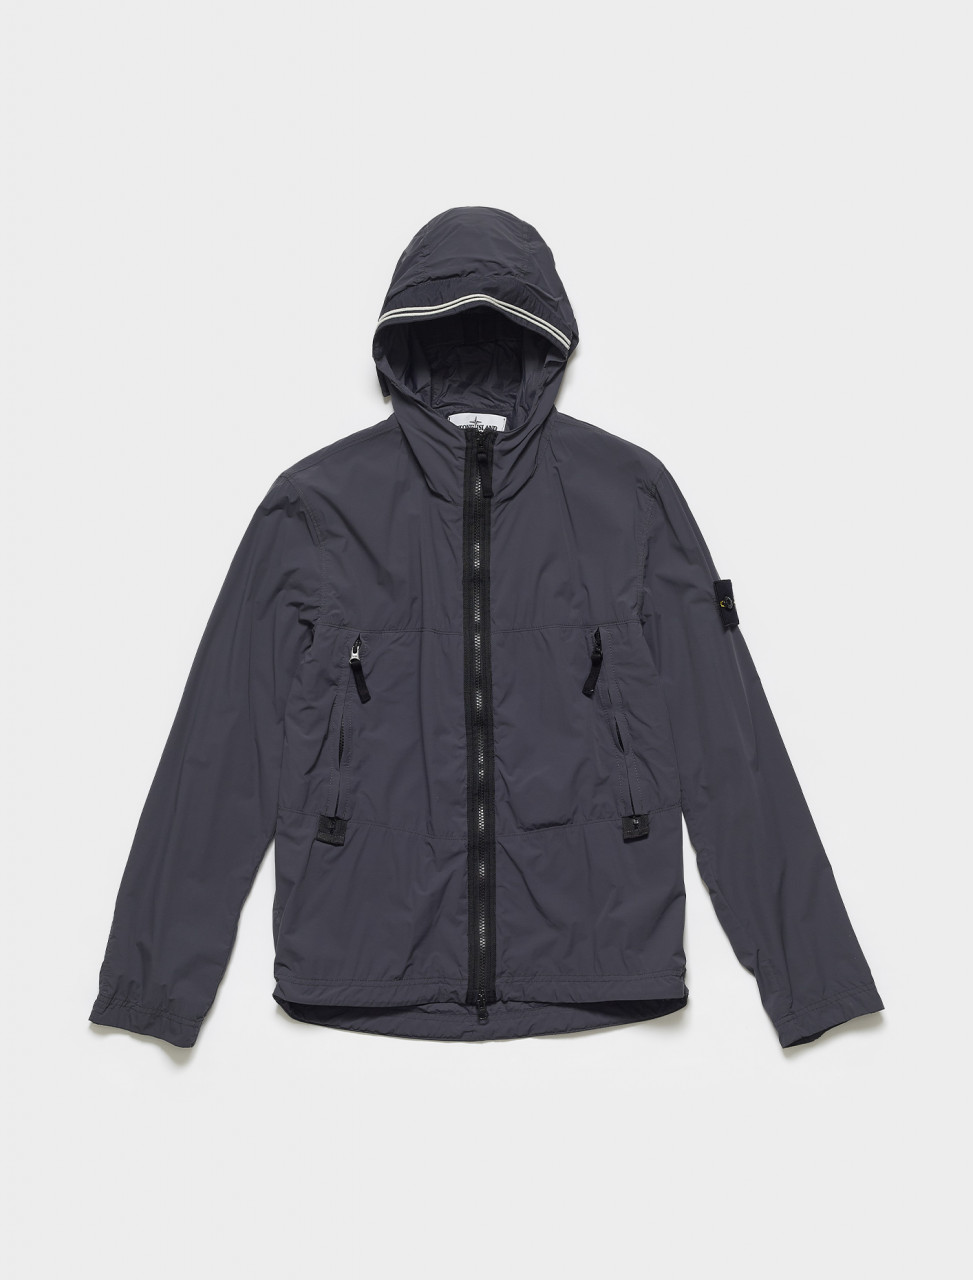 741540131 STONE ISLAND JACKET IN ANTHRACITE